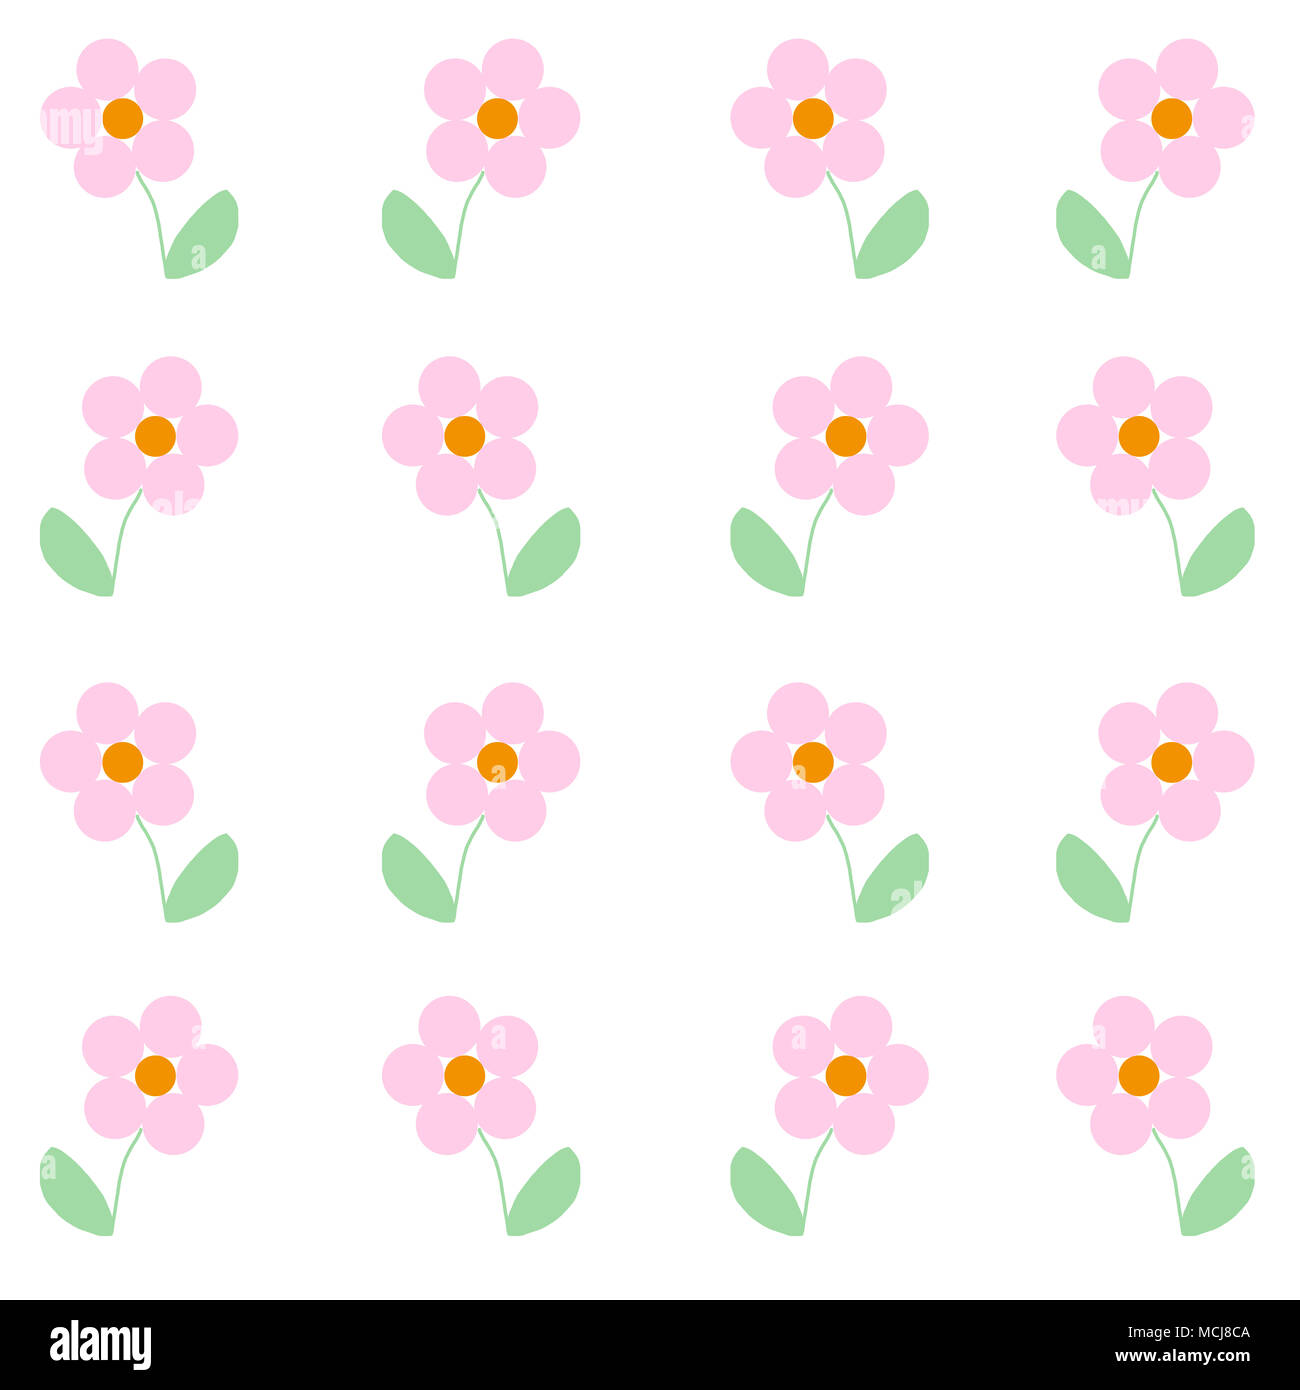 Cute illustrated baby pink flowers simple print to be used as a cute illustrated baby pink flowers simple print to be used as a canvas background wallpaper childlike drawing with pastel colors mightylinksfo